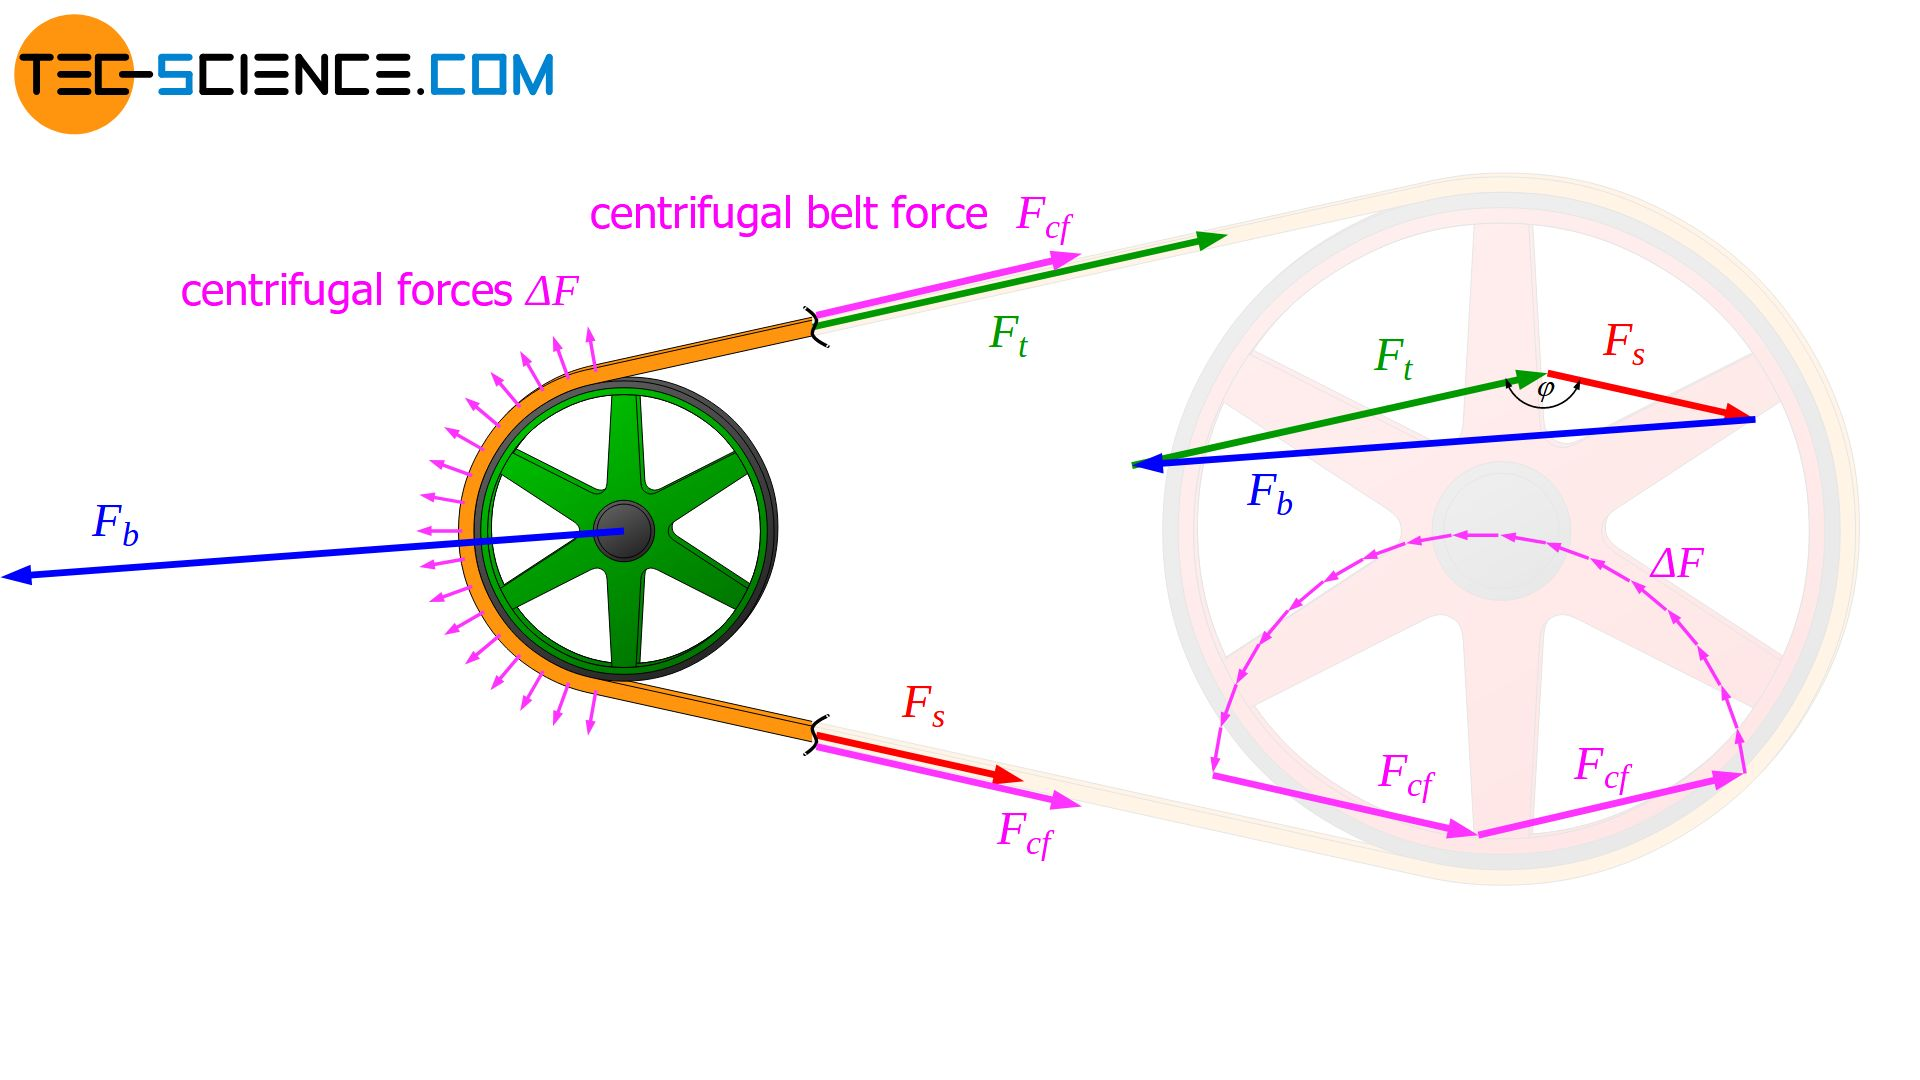 Compensation of centrifugal forces during operation